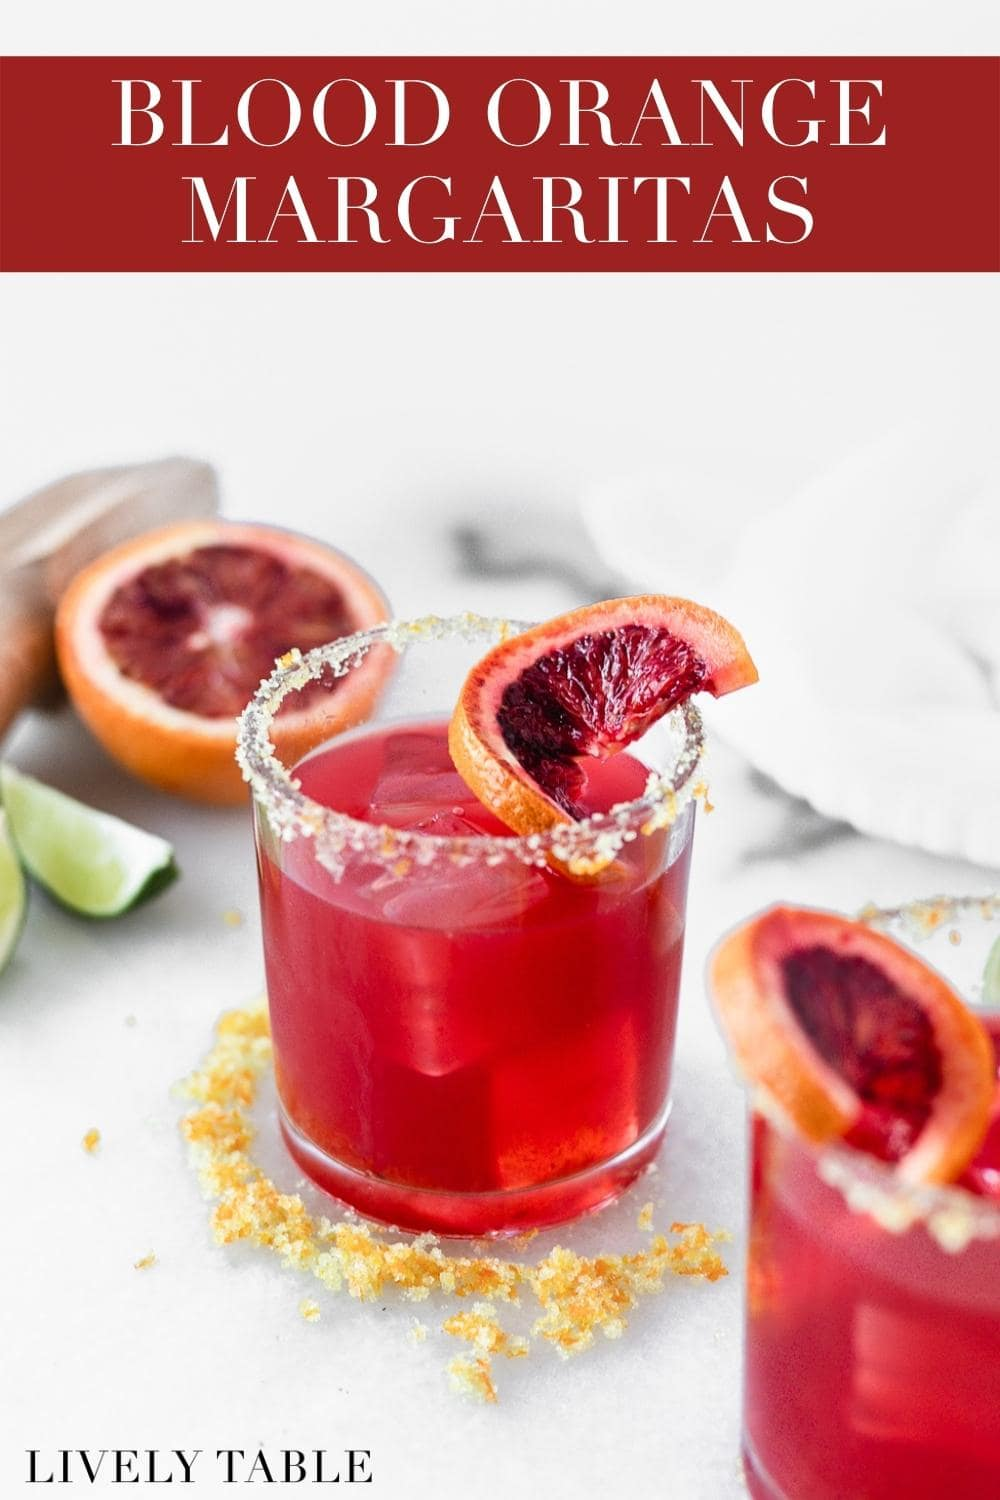 Celebrate citrus season with simple, gorgeous blood orange margaritas! #margaritas #bloodorangecocktails #bloodorangemargarita #bloodorange #citruscocktails